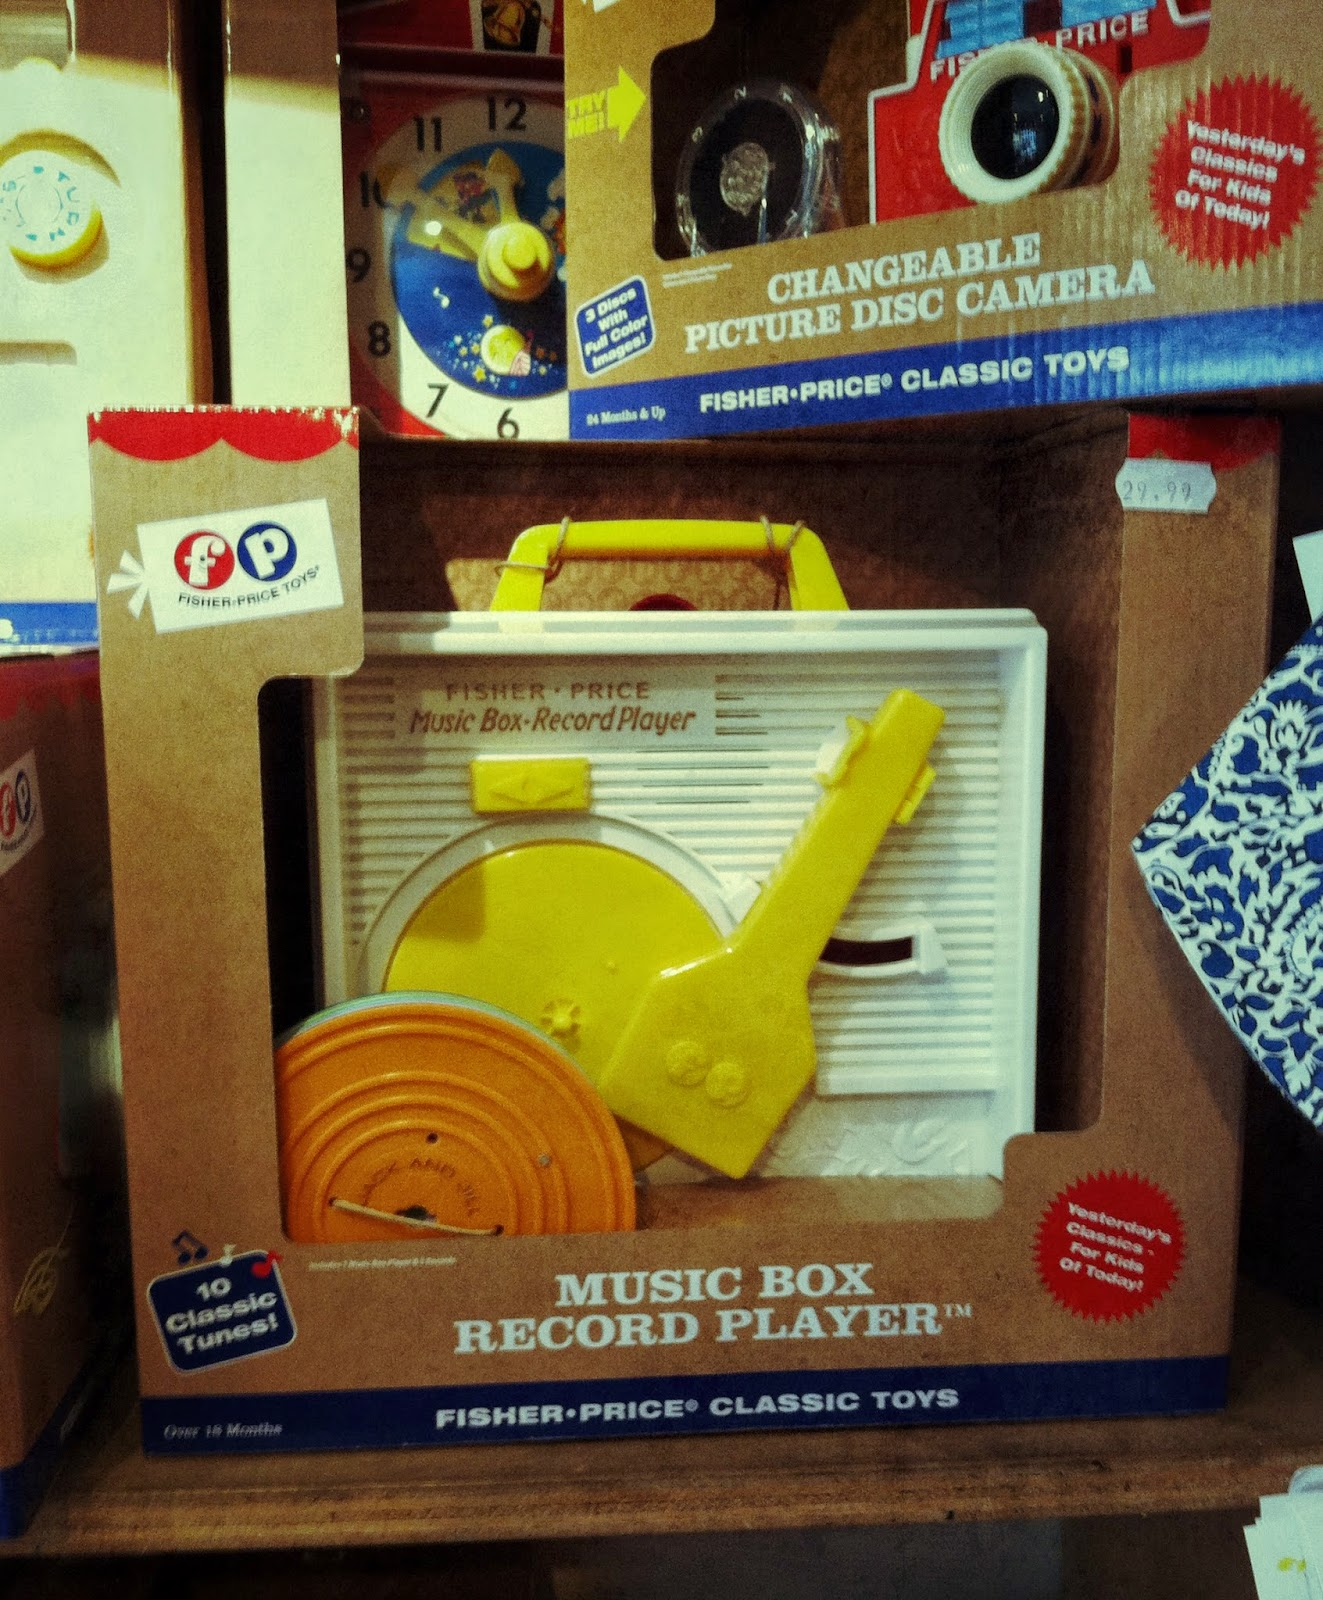 Fisher-Price Classic Music Box Record Player in packaging on Space shop shelf